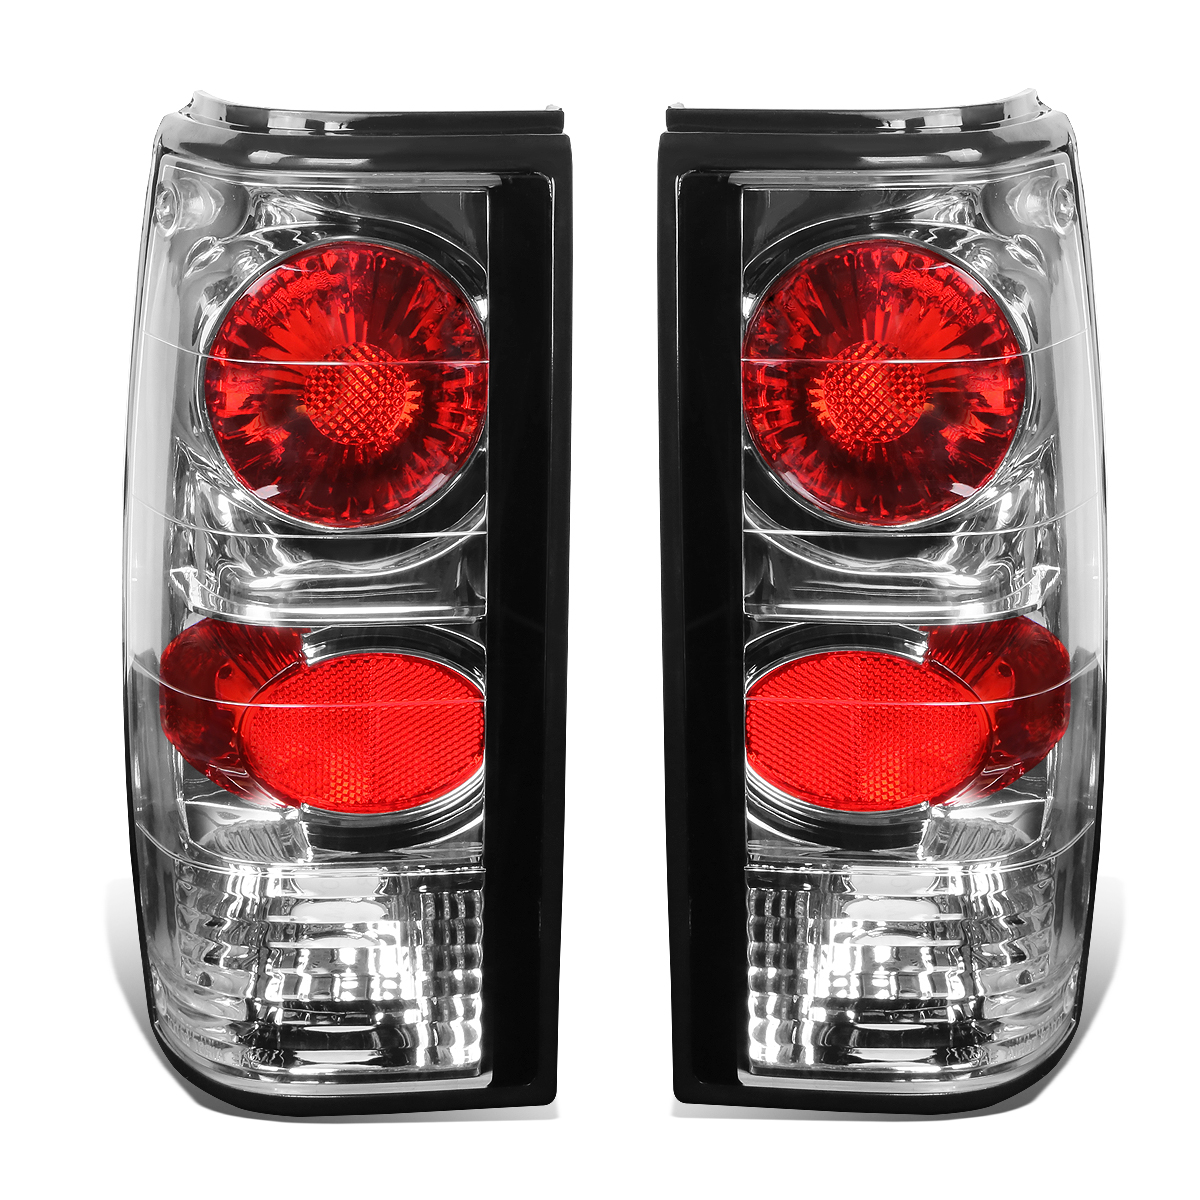 For 83-94 Chevy S10 / GMC S15 Pair of Chrome Housing Clear Lens Brake Tail Lights 84 85 86 87 88 89 90 91 92 93